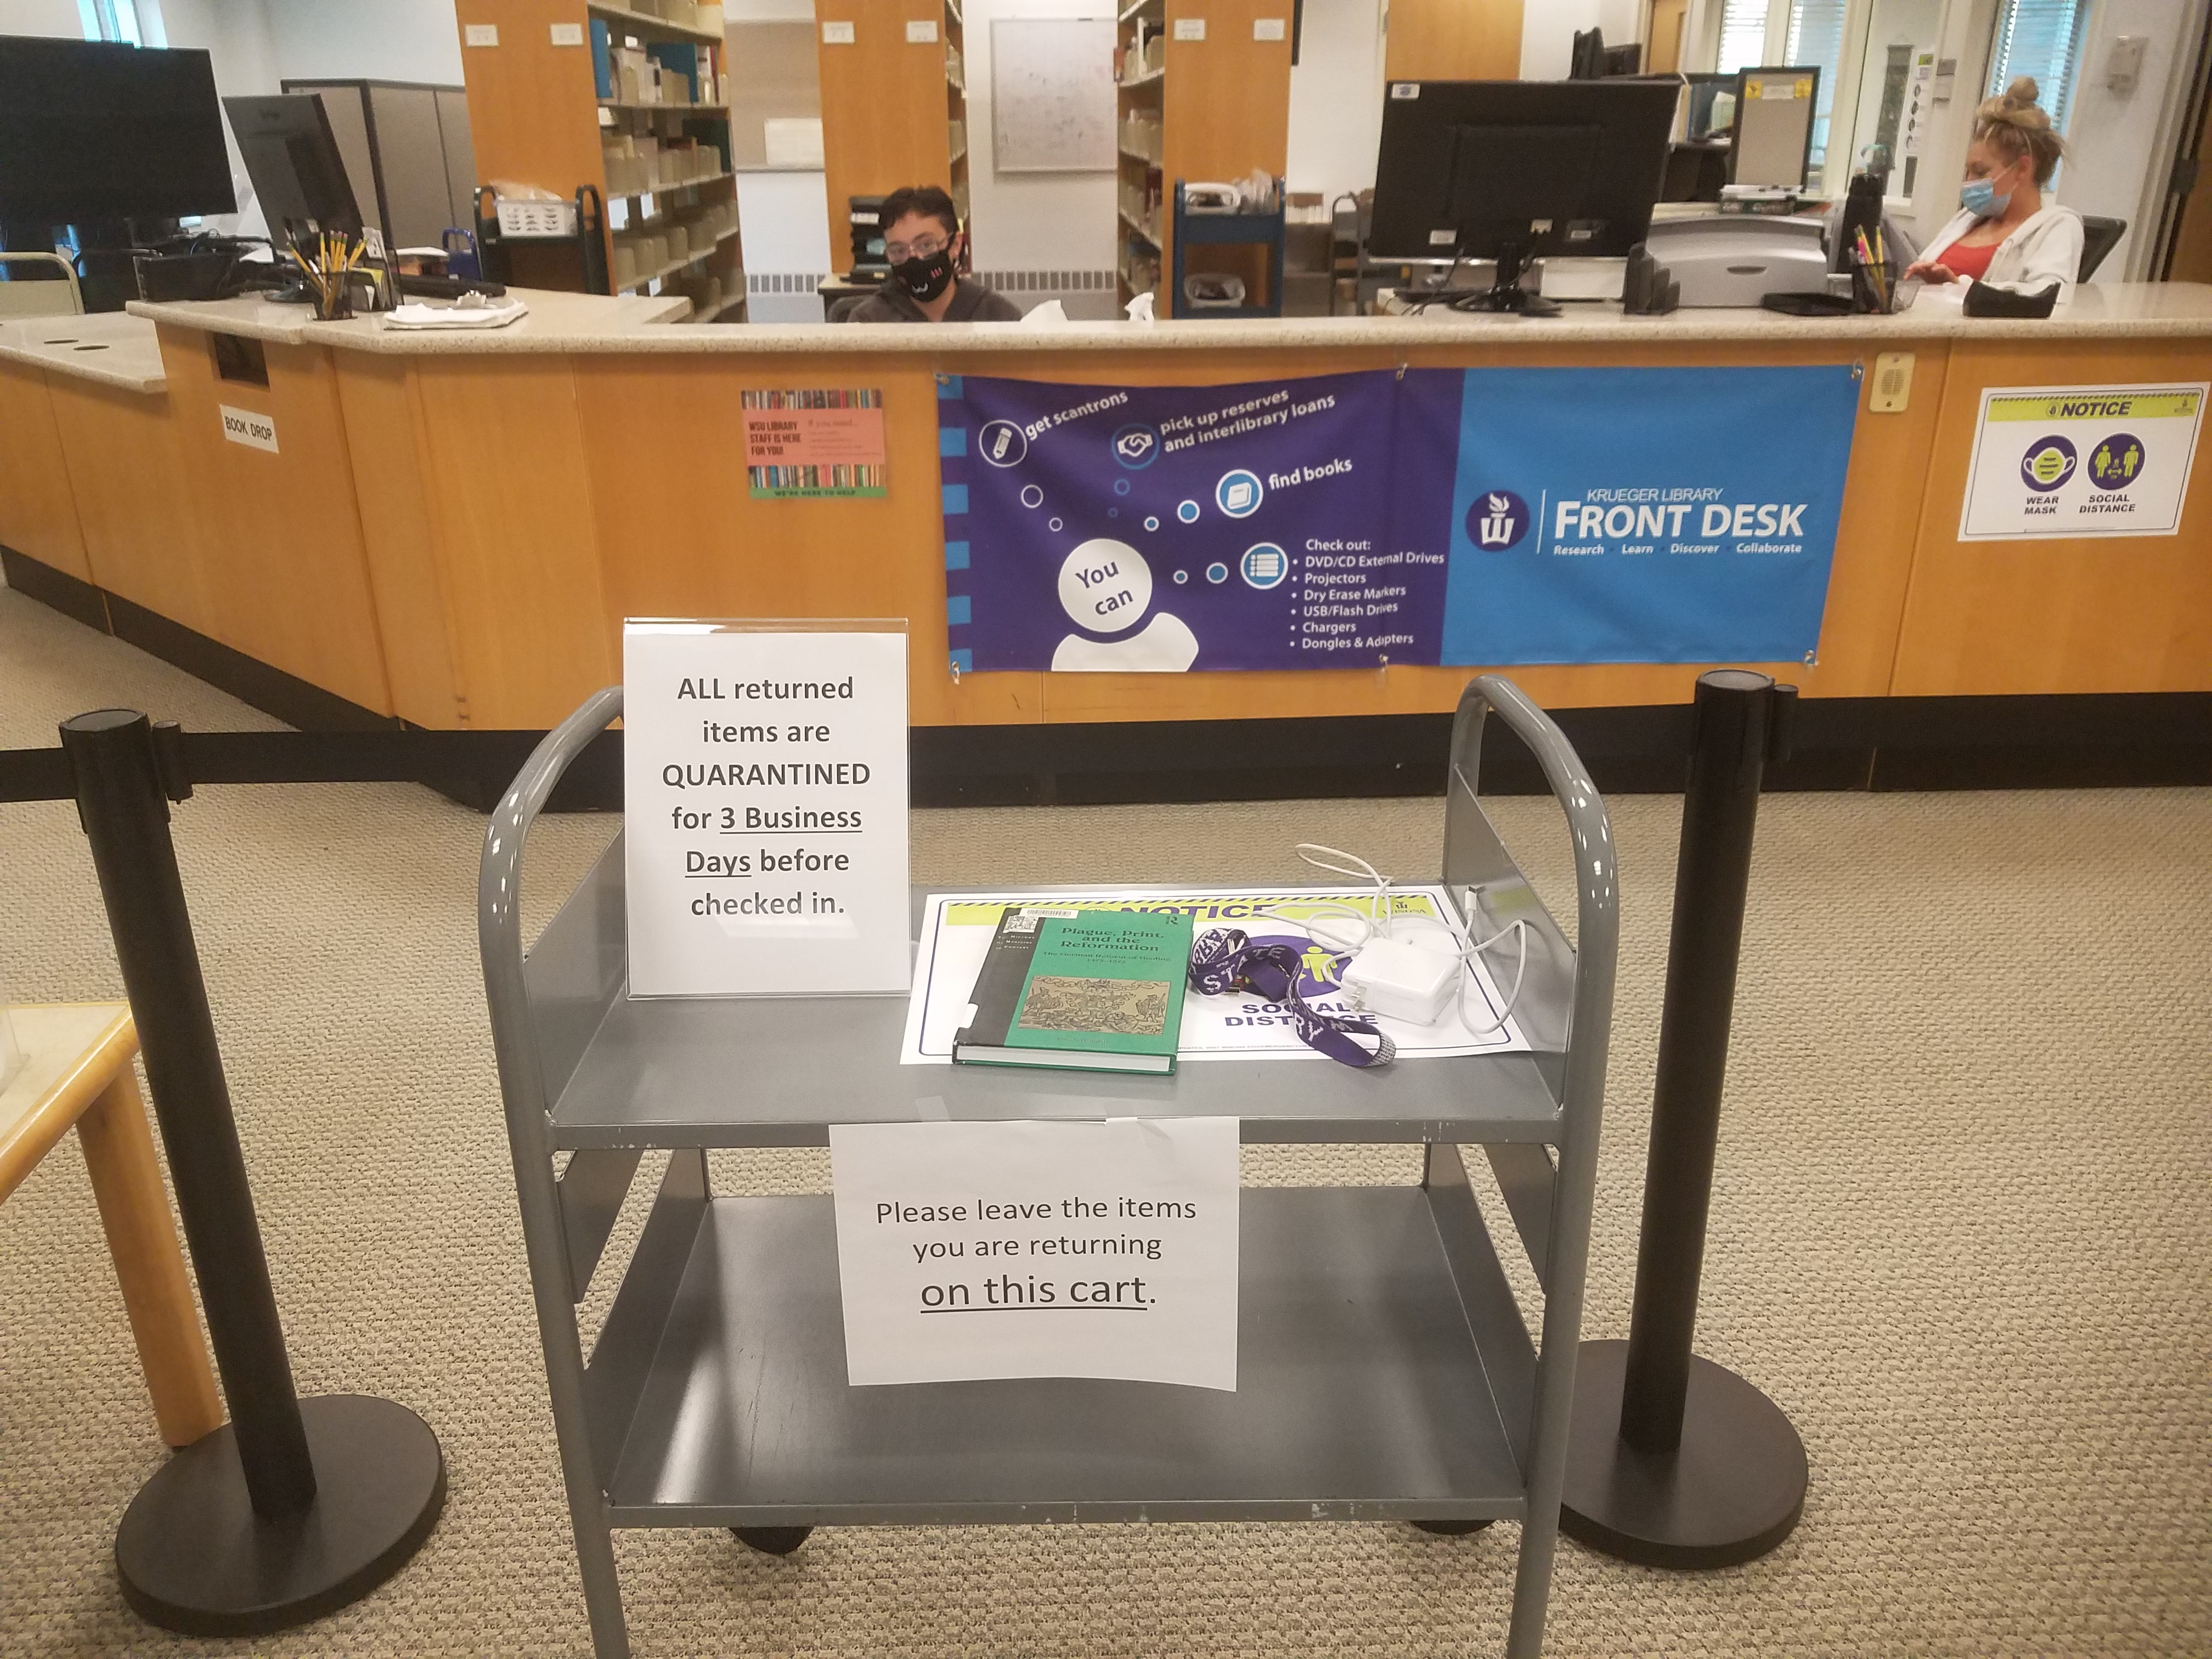 picture of book cart with signs about quarantining returned items